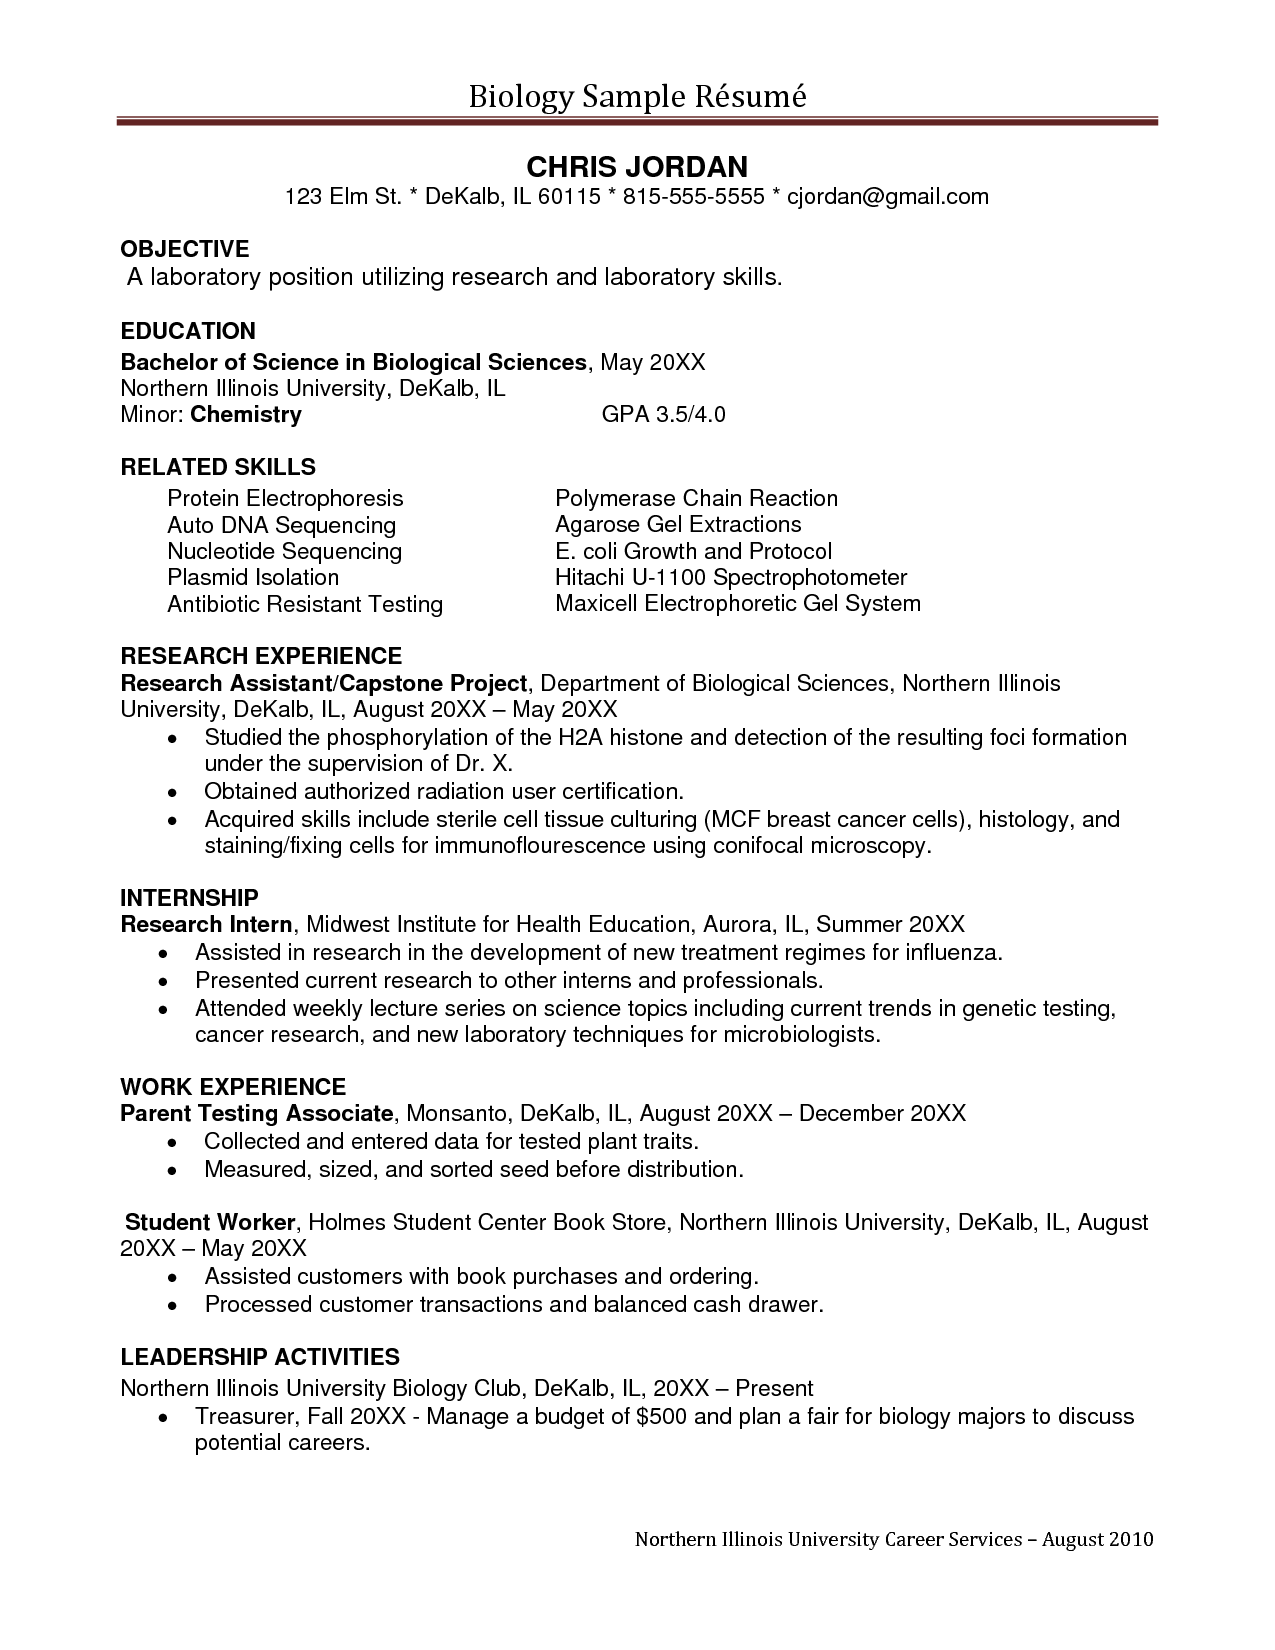 Internship Objectives For Resume Sample Undergraduate Research Assistant Resume Sample ĺ